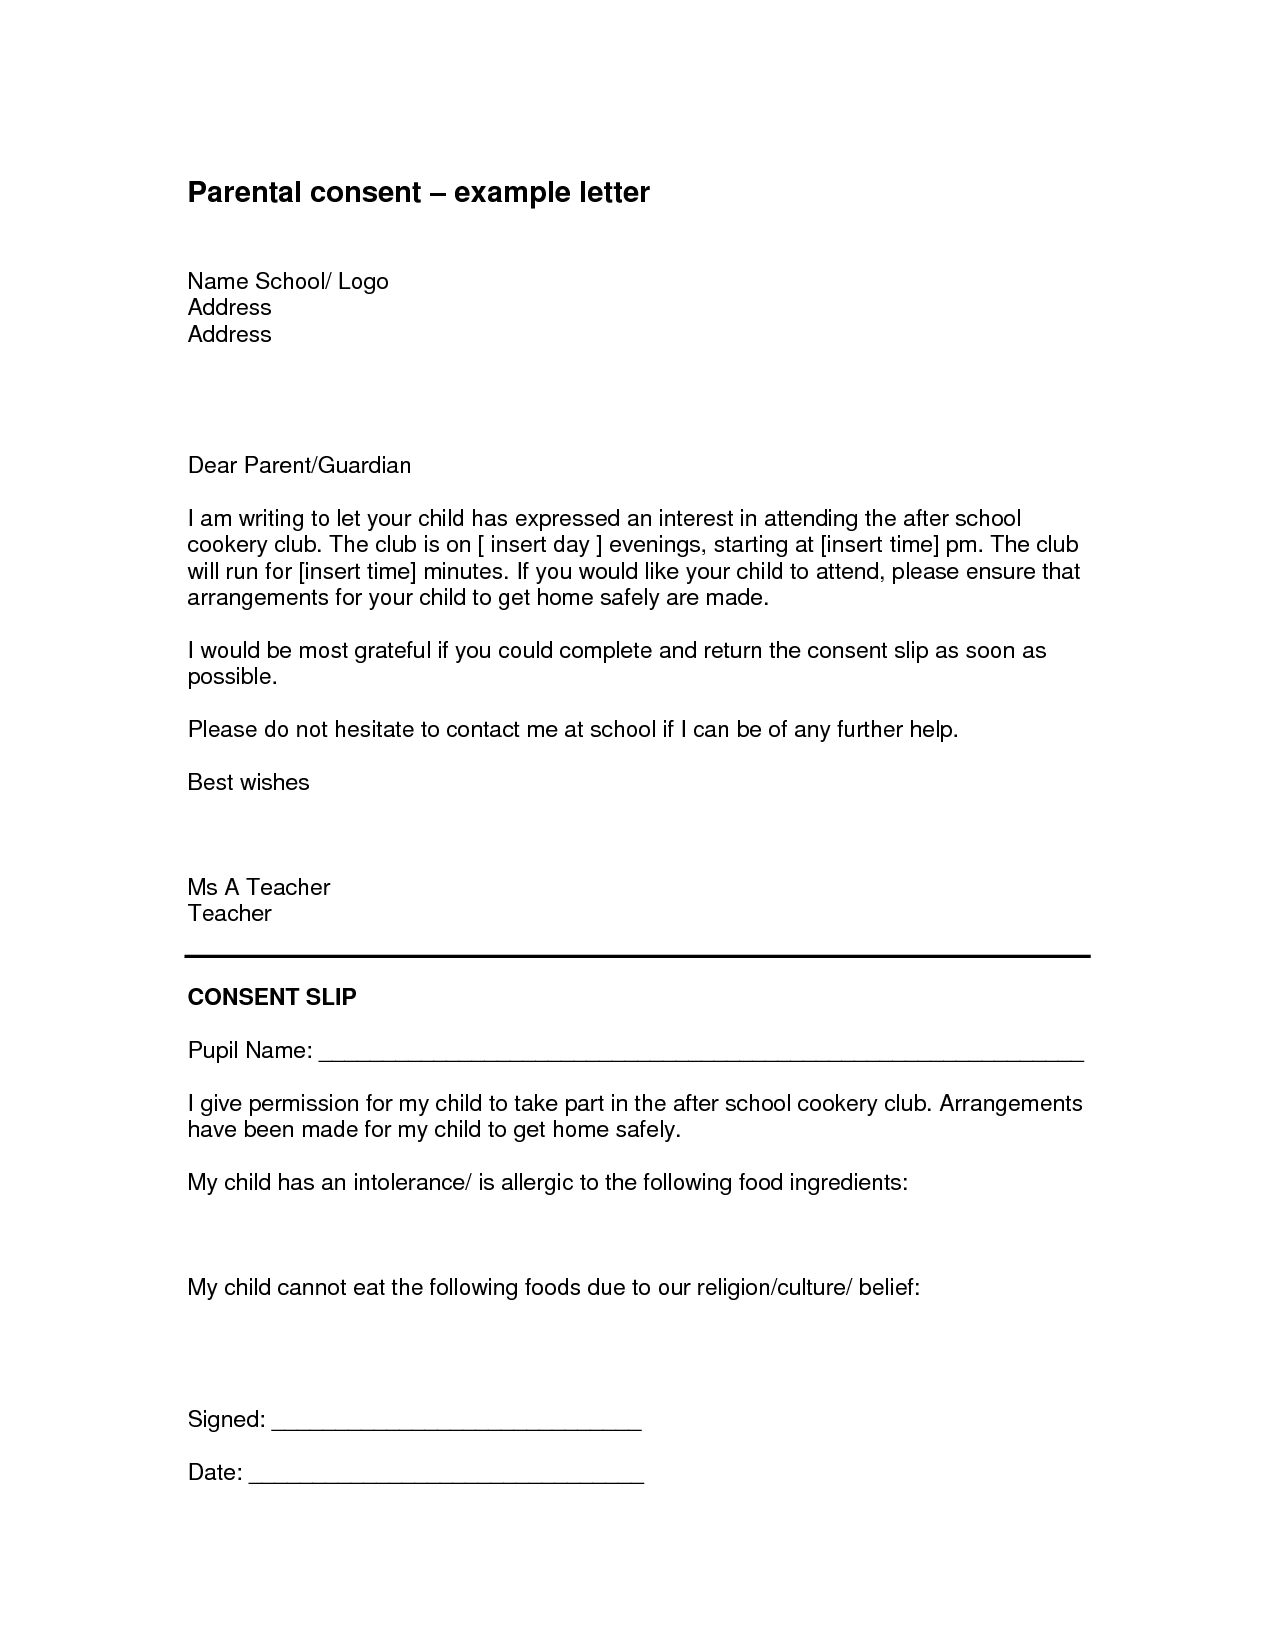 Parental Consent Permission Letter Template - Parental Authorization Letter for Example Children Travelling